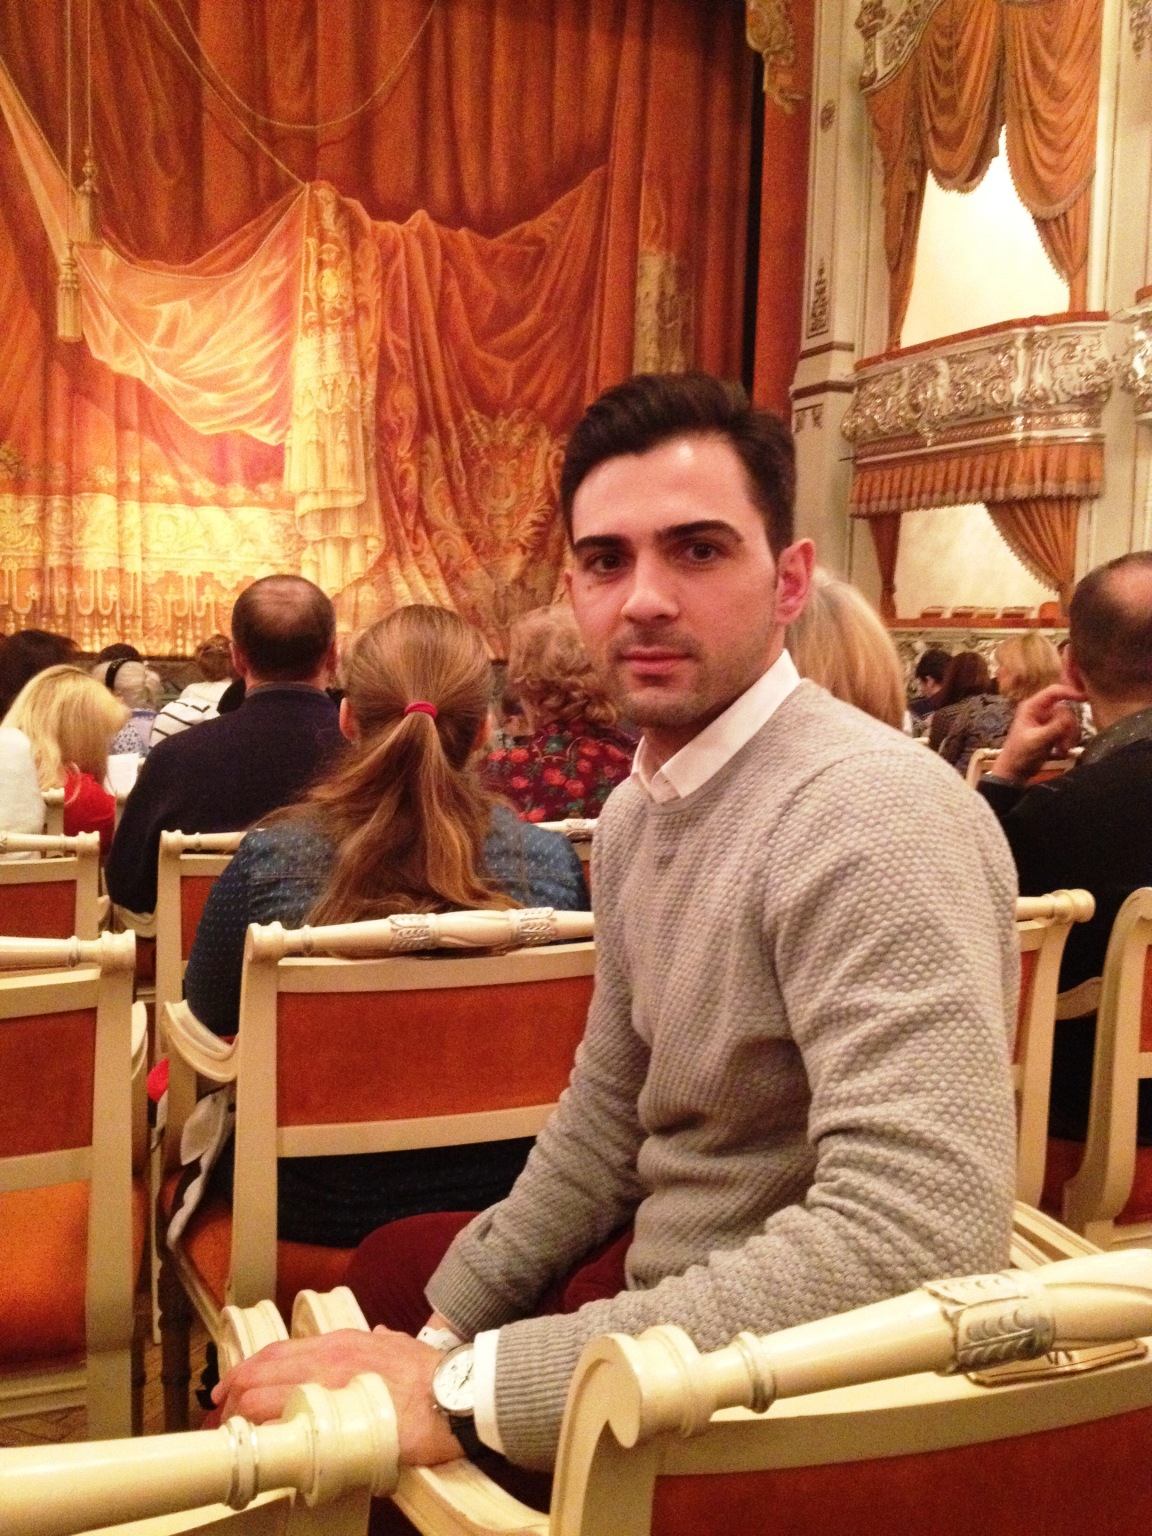 Amazing experience at Mikhailovsky Theater